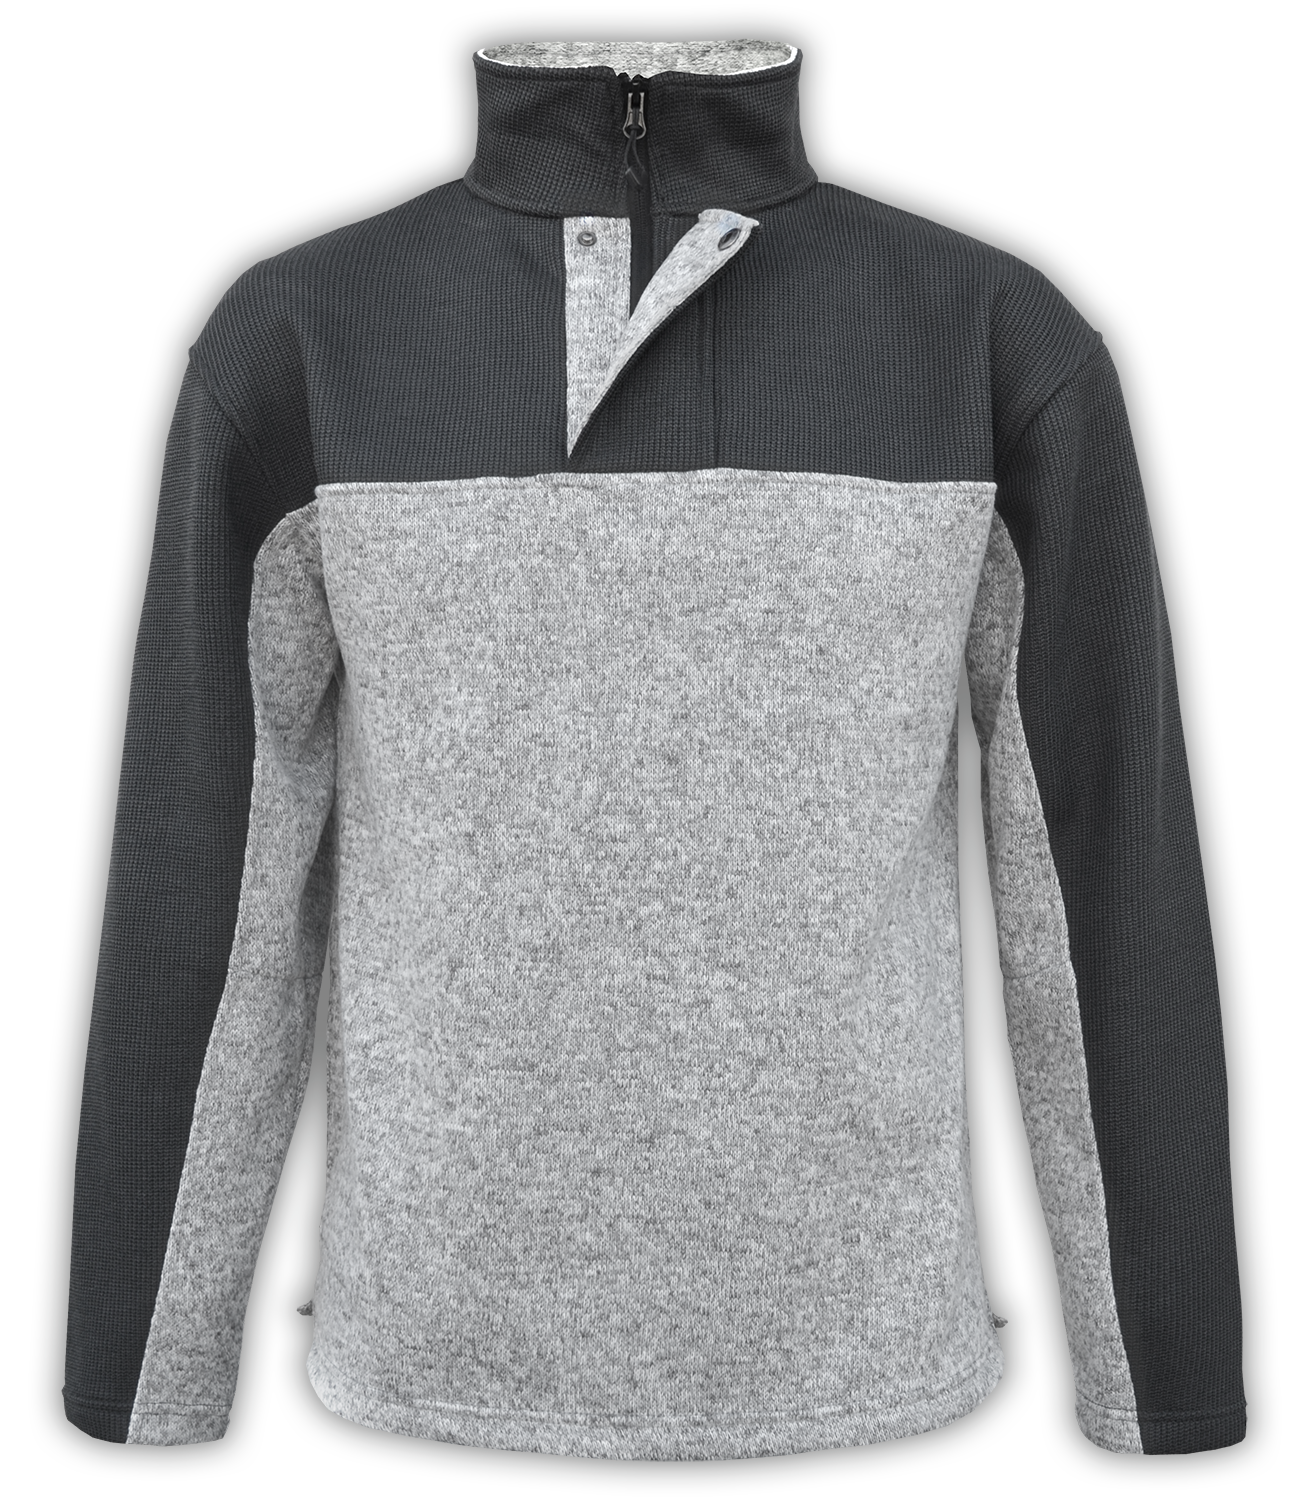 Renegade-club-mens-half-zip-placket-fleece-pullover-coarse-weave-north-shore-salt-and-pepper-gray-black-soft-mens fleece jacket-2-color